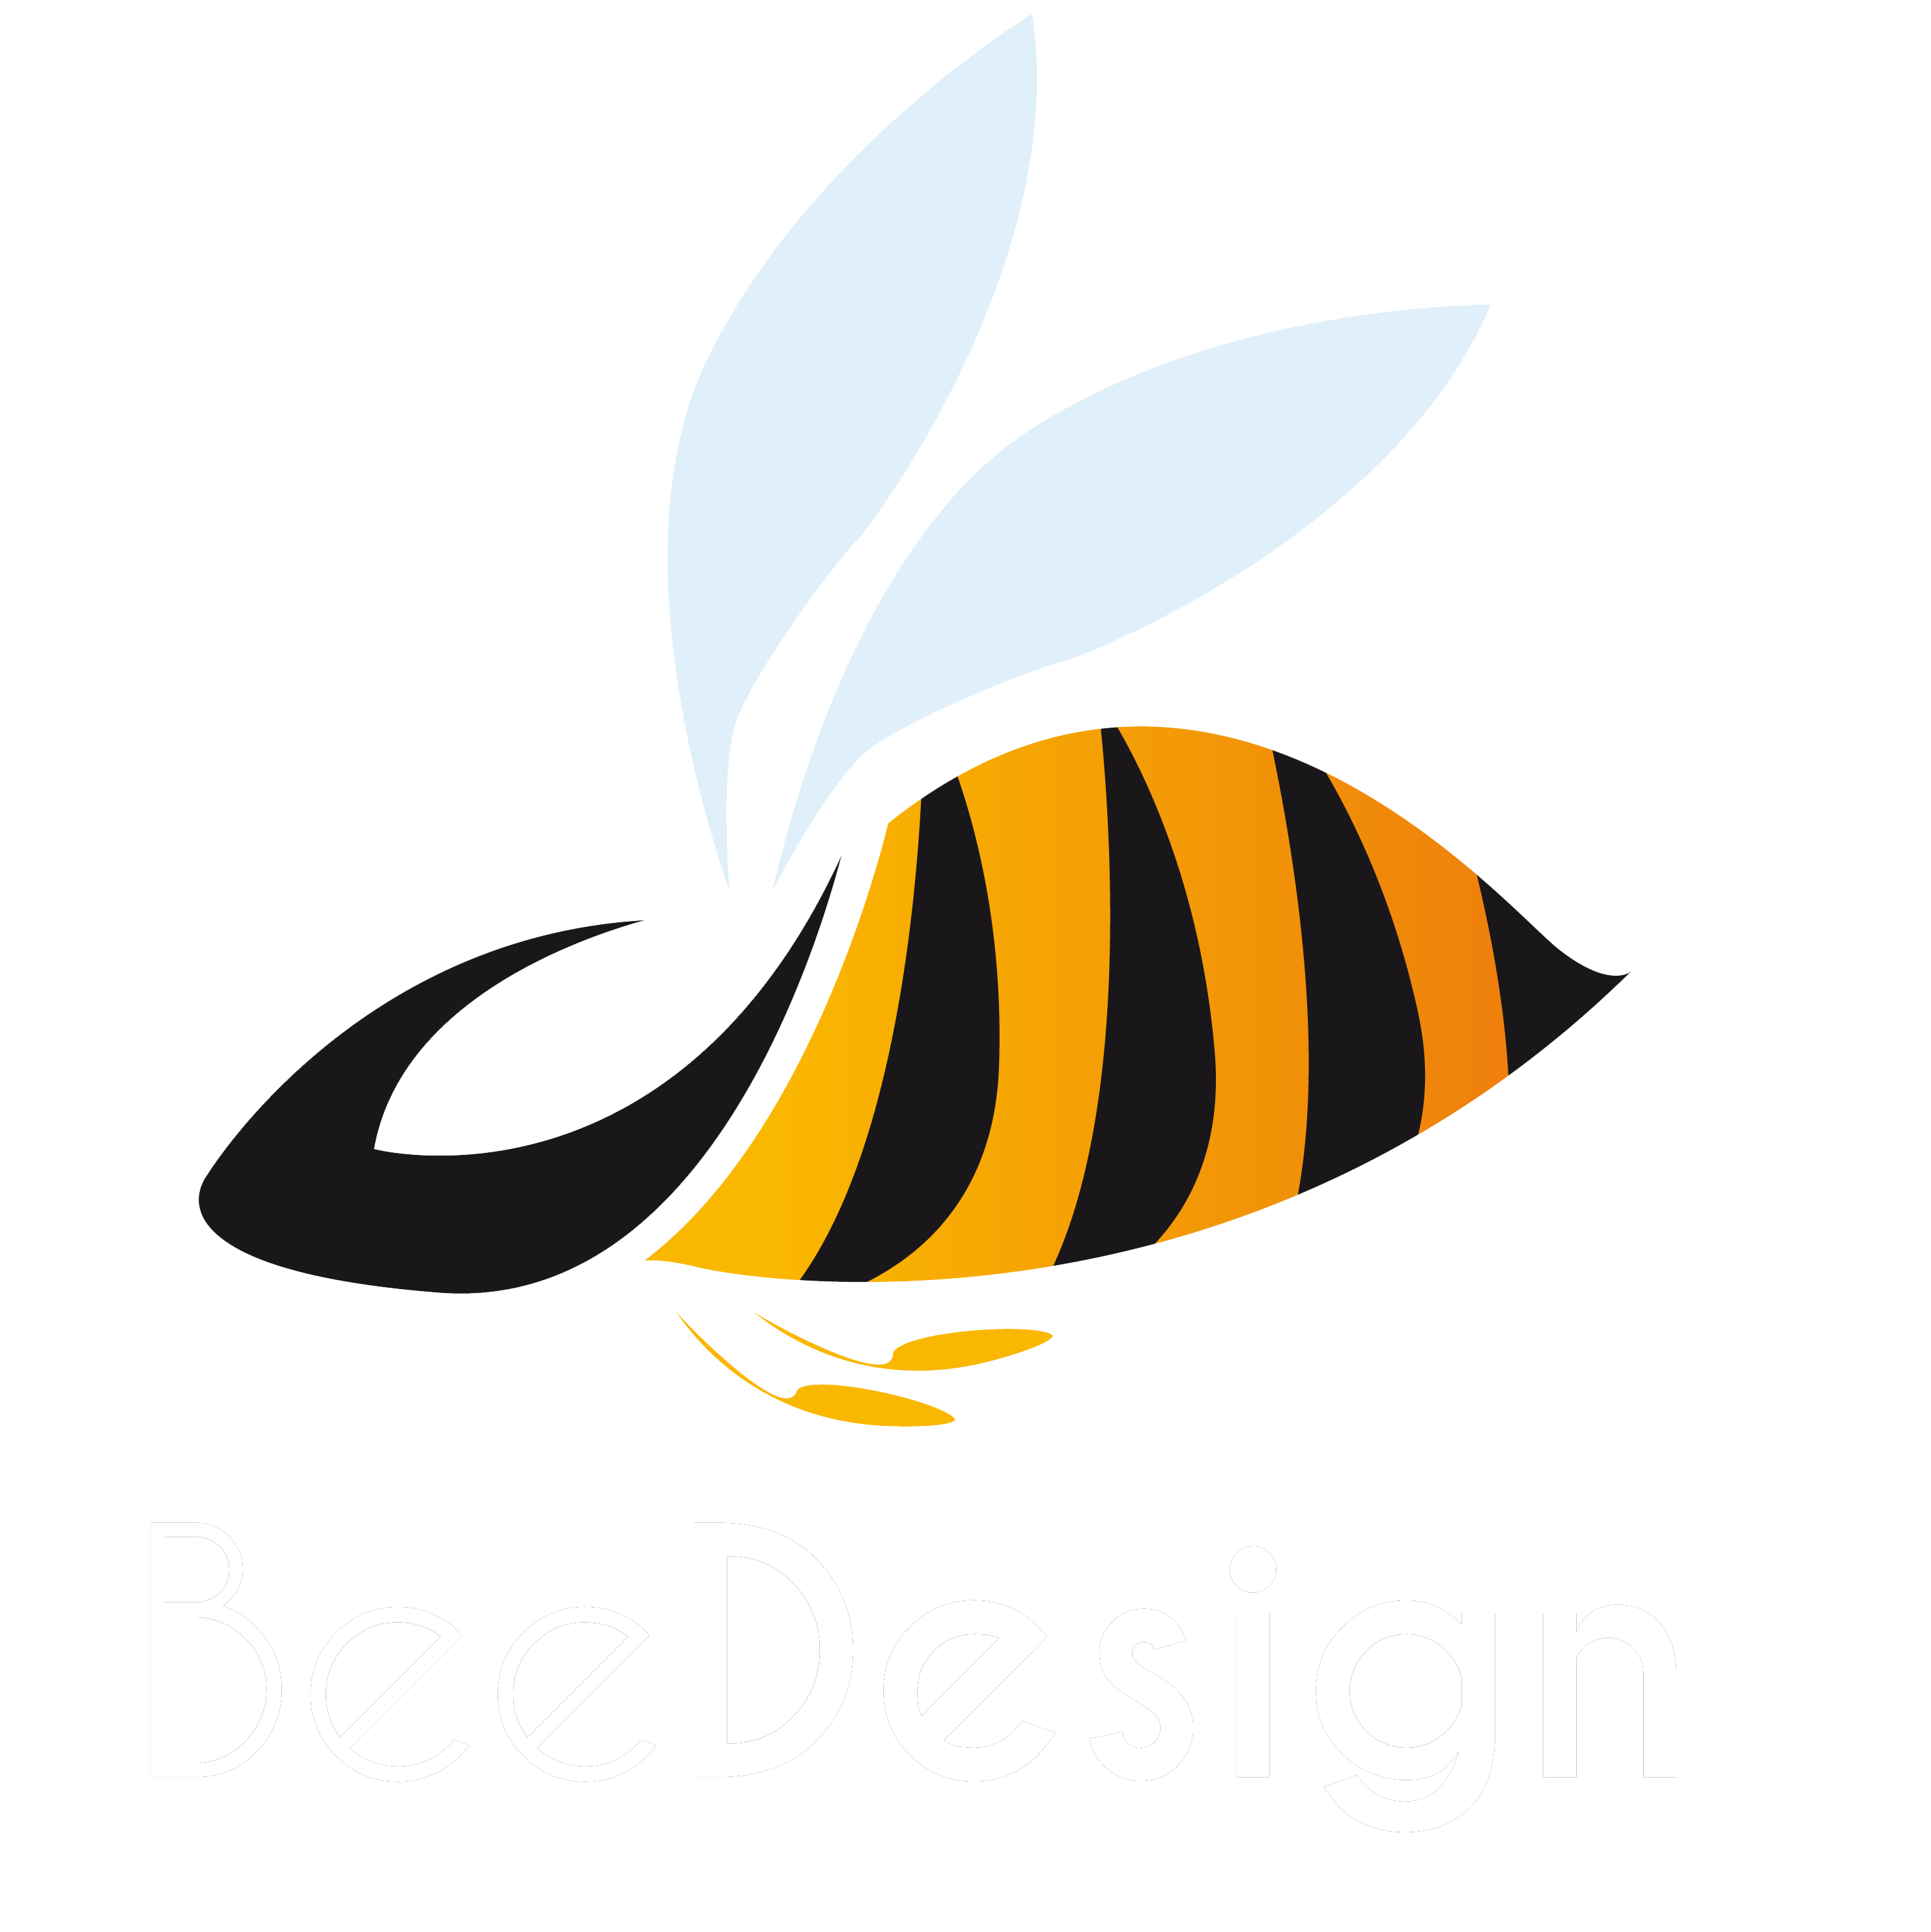 bee logos clip art - photo #40